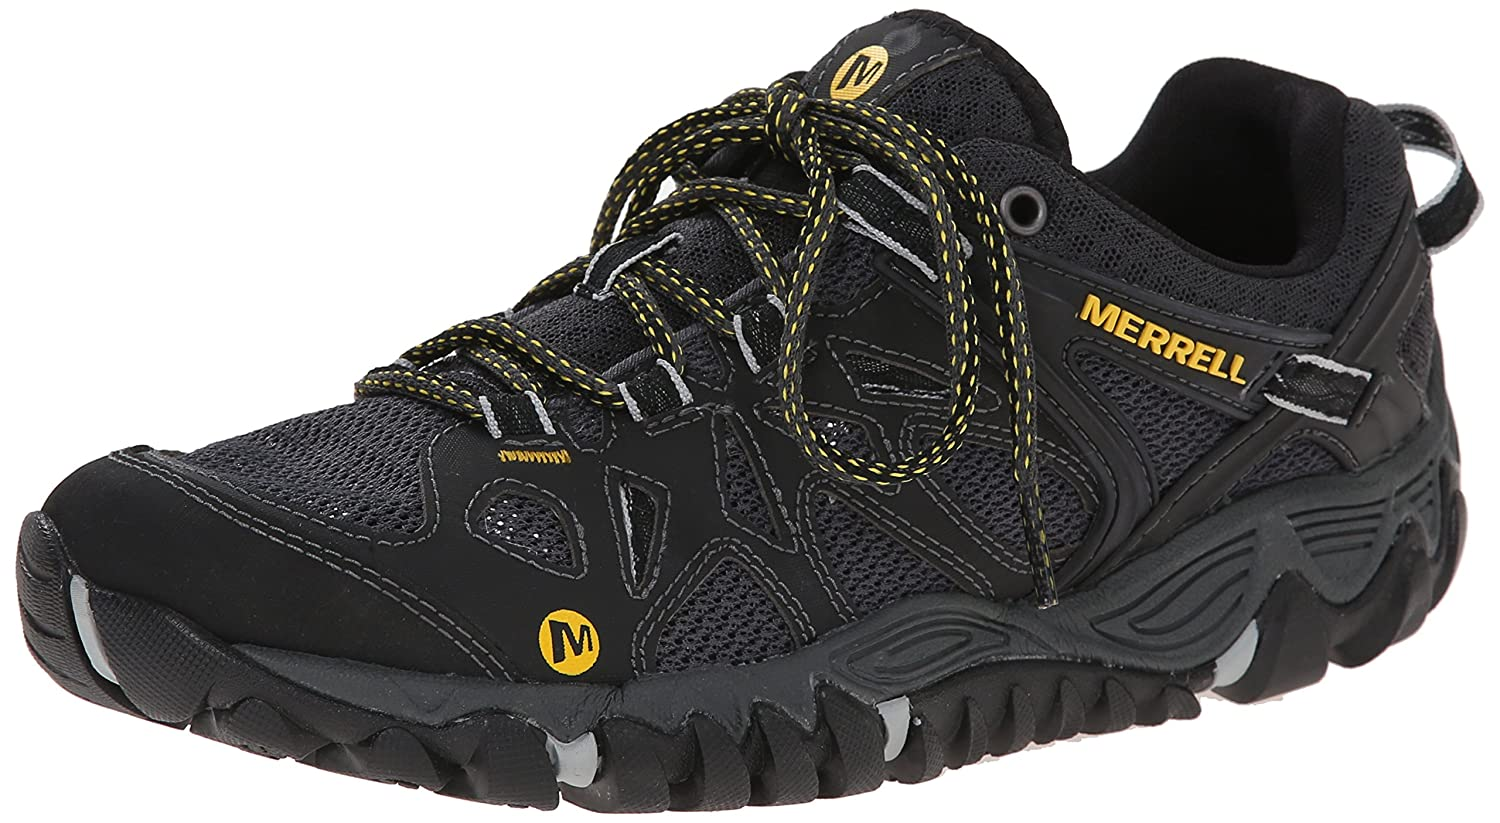 a83521fe96 Merrell Men's All Out All Out Blaze Aero Sport Low Rise Hiking Shoes:  Amazon.co.uk: Shoes & Bags